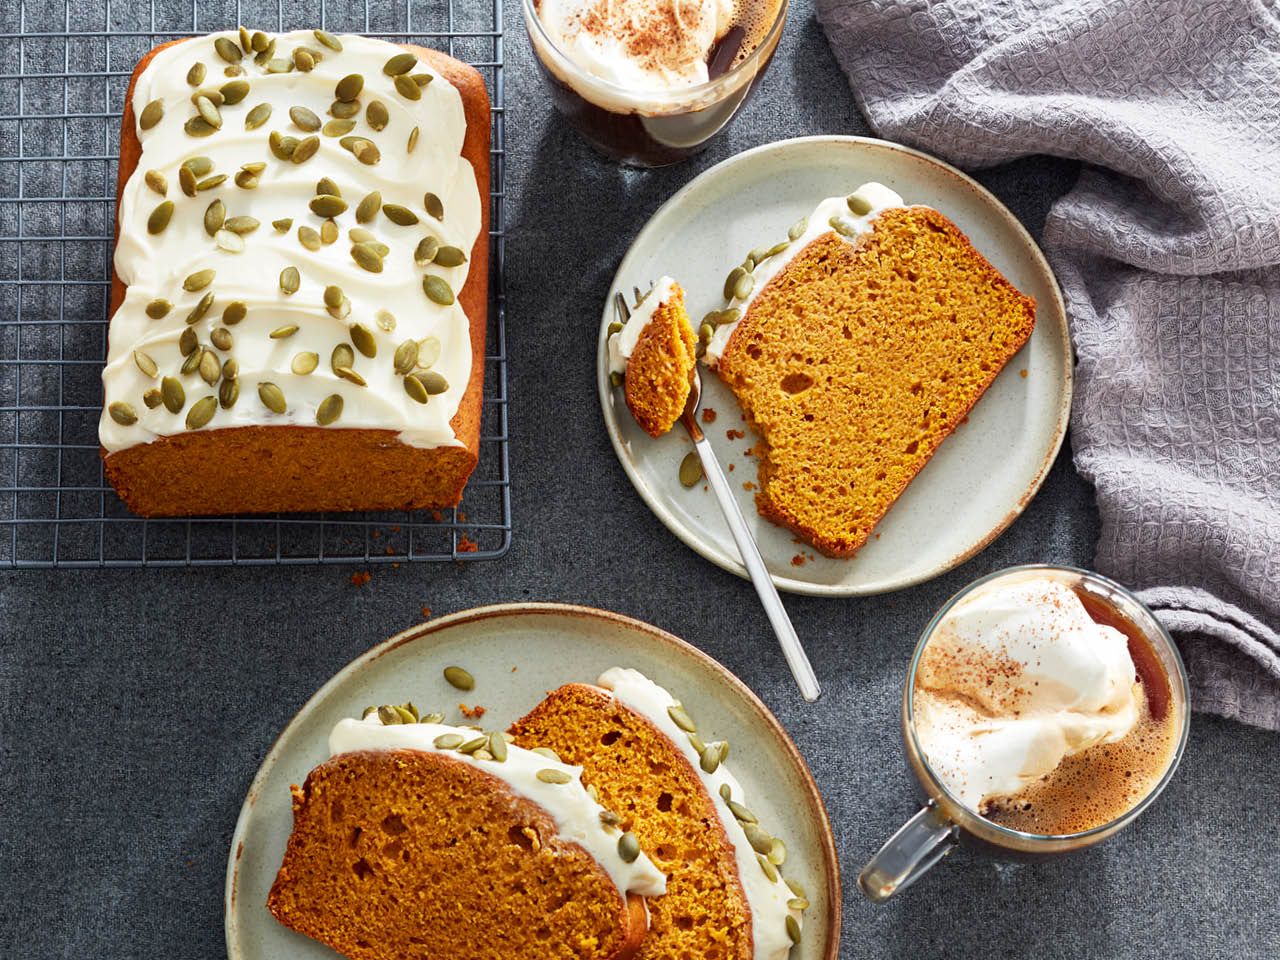 Pumpkin dessert recipes for Thanksgiving and beyond: Classic pumpkin loaf